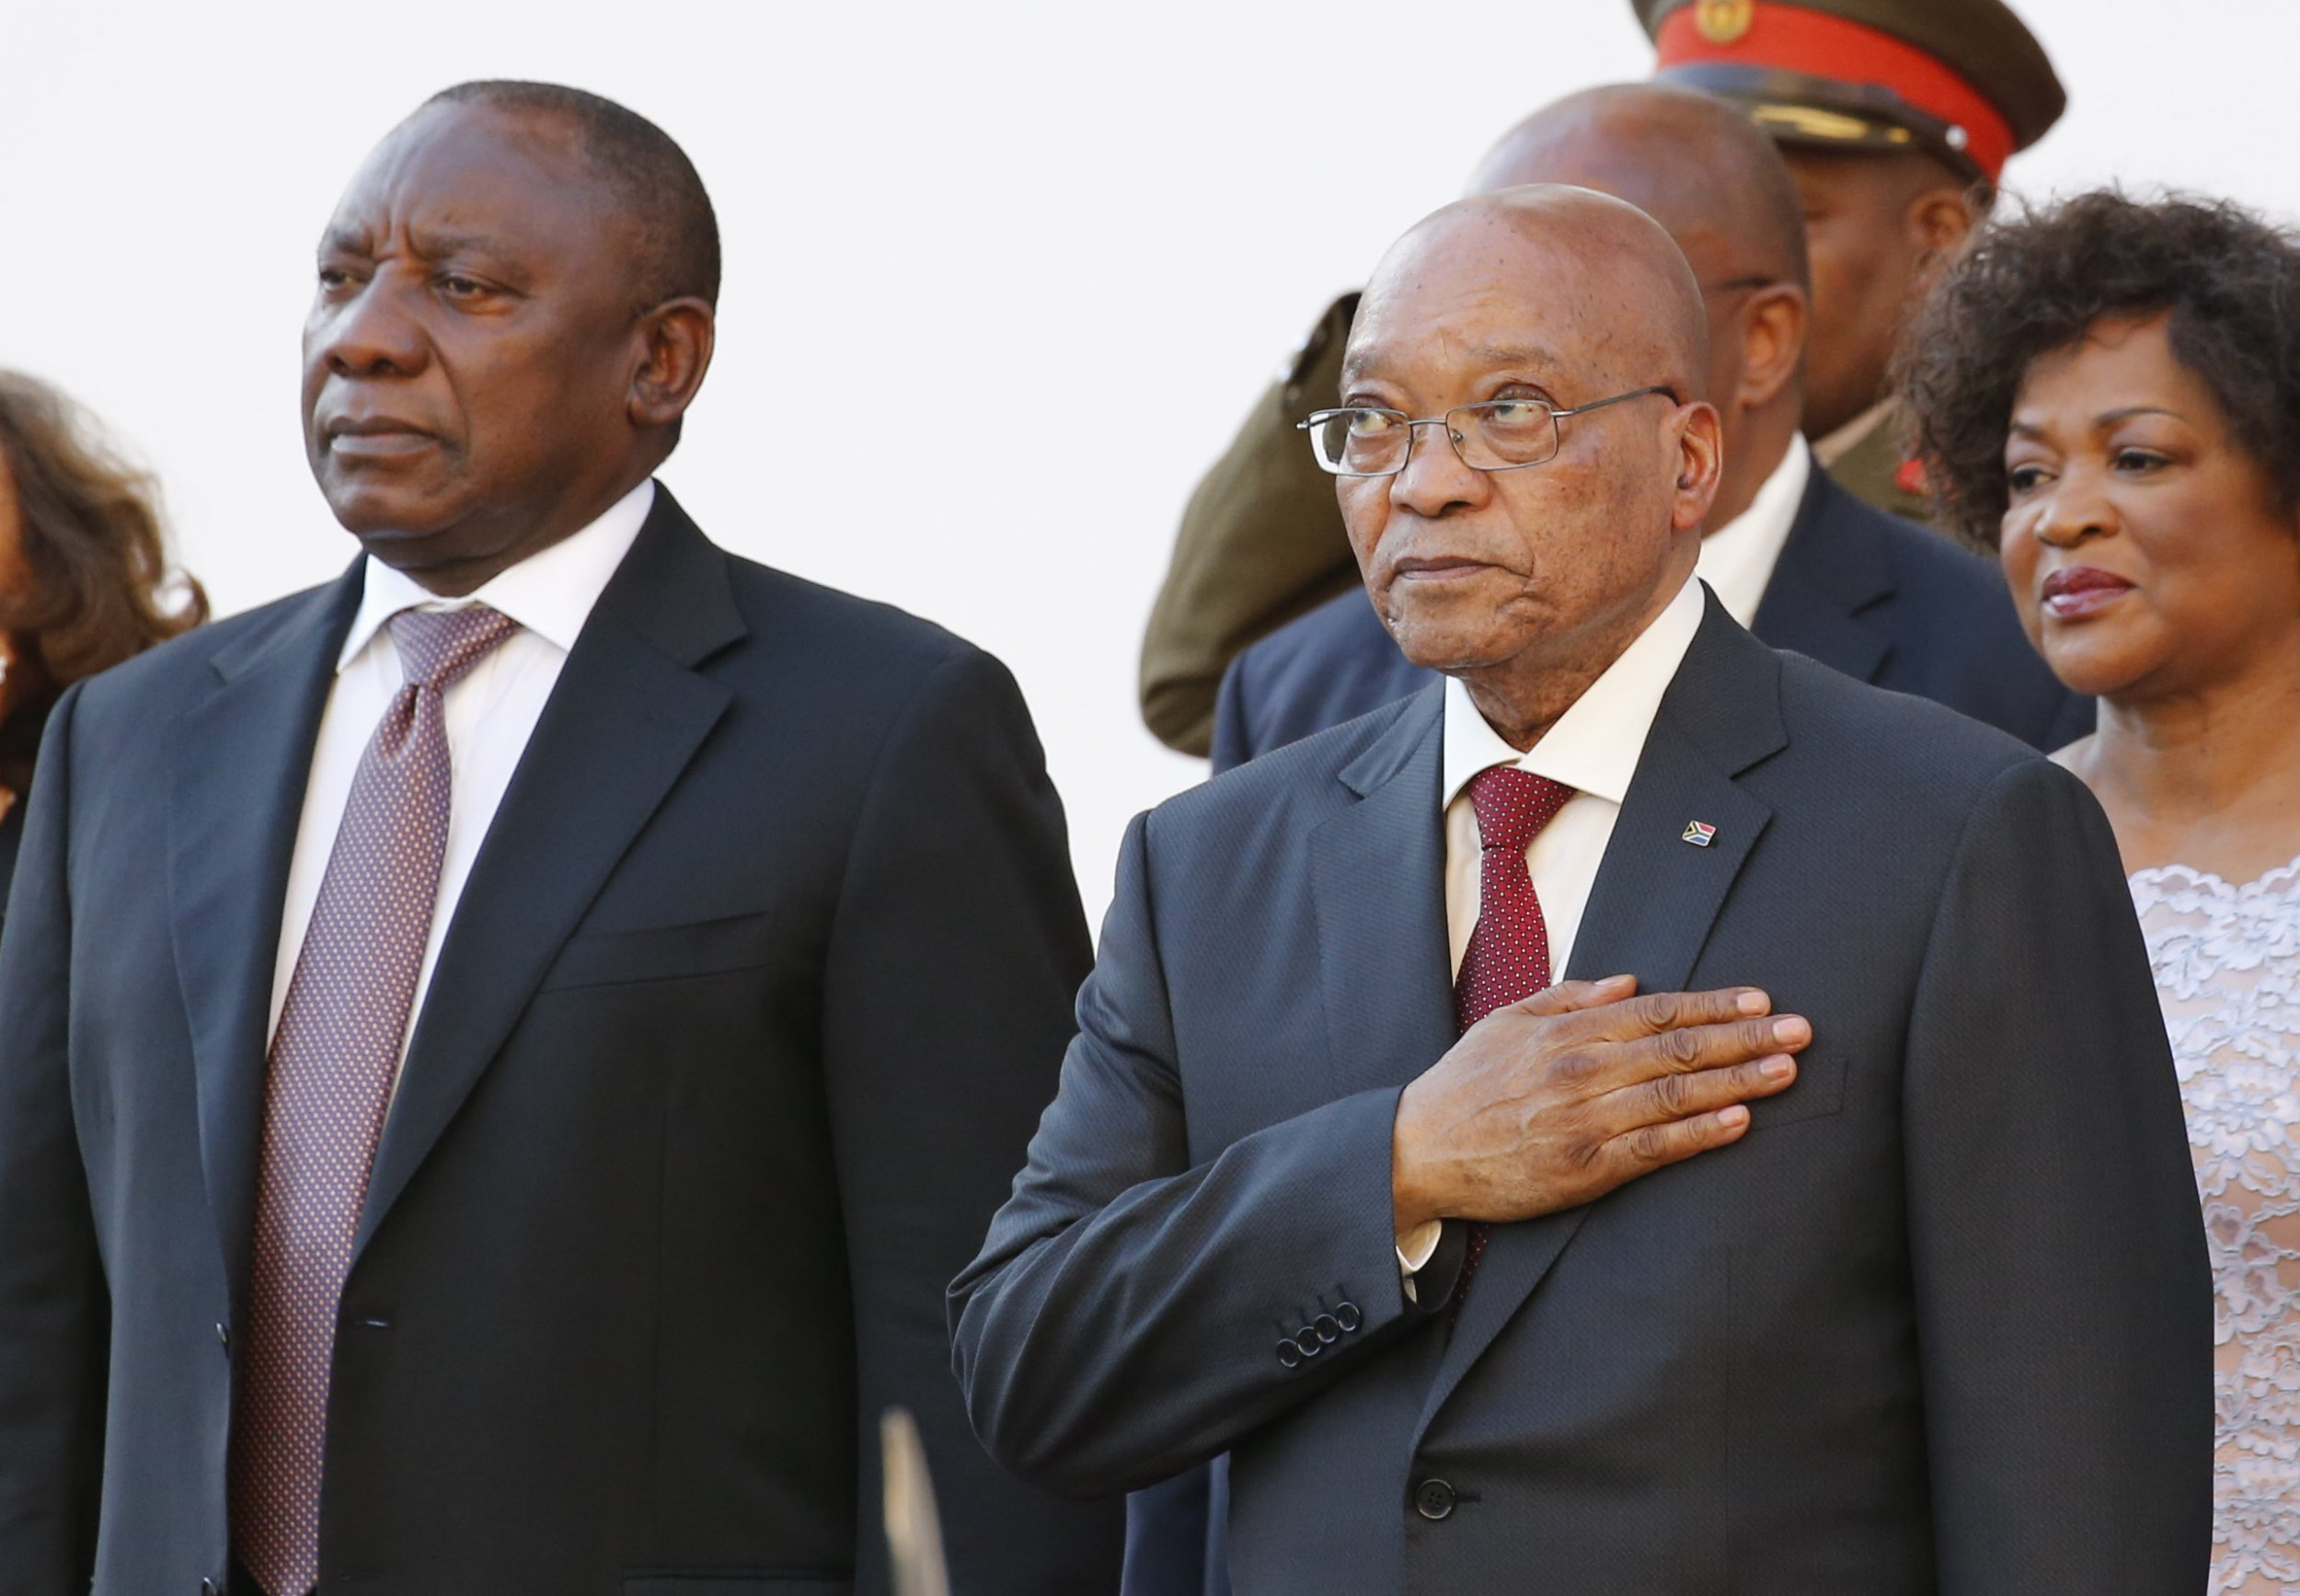 South Africa's President Jacob Zuma at the opening of parliament.